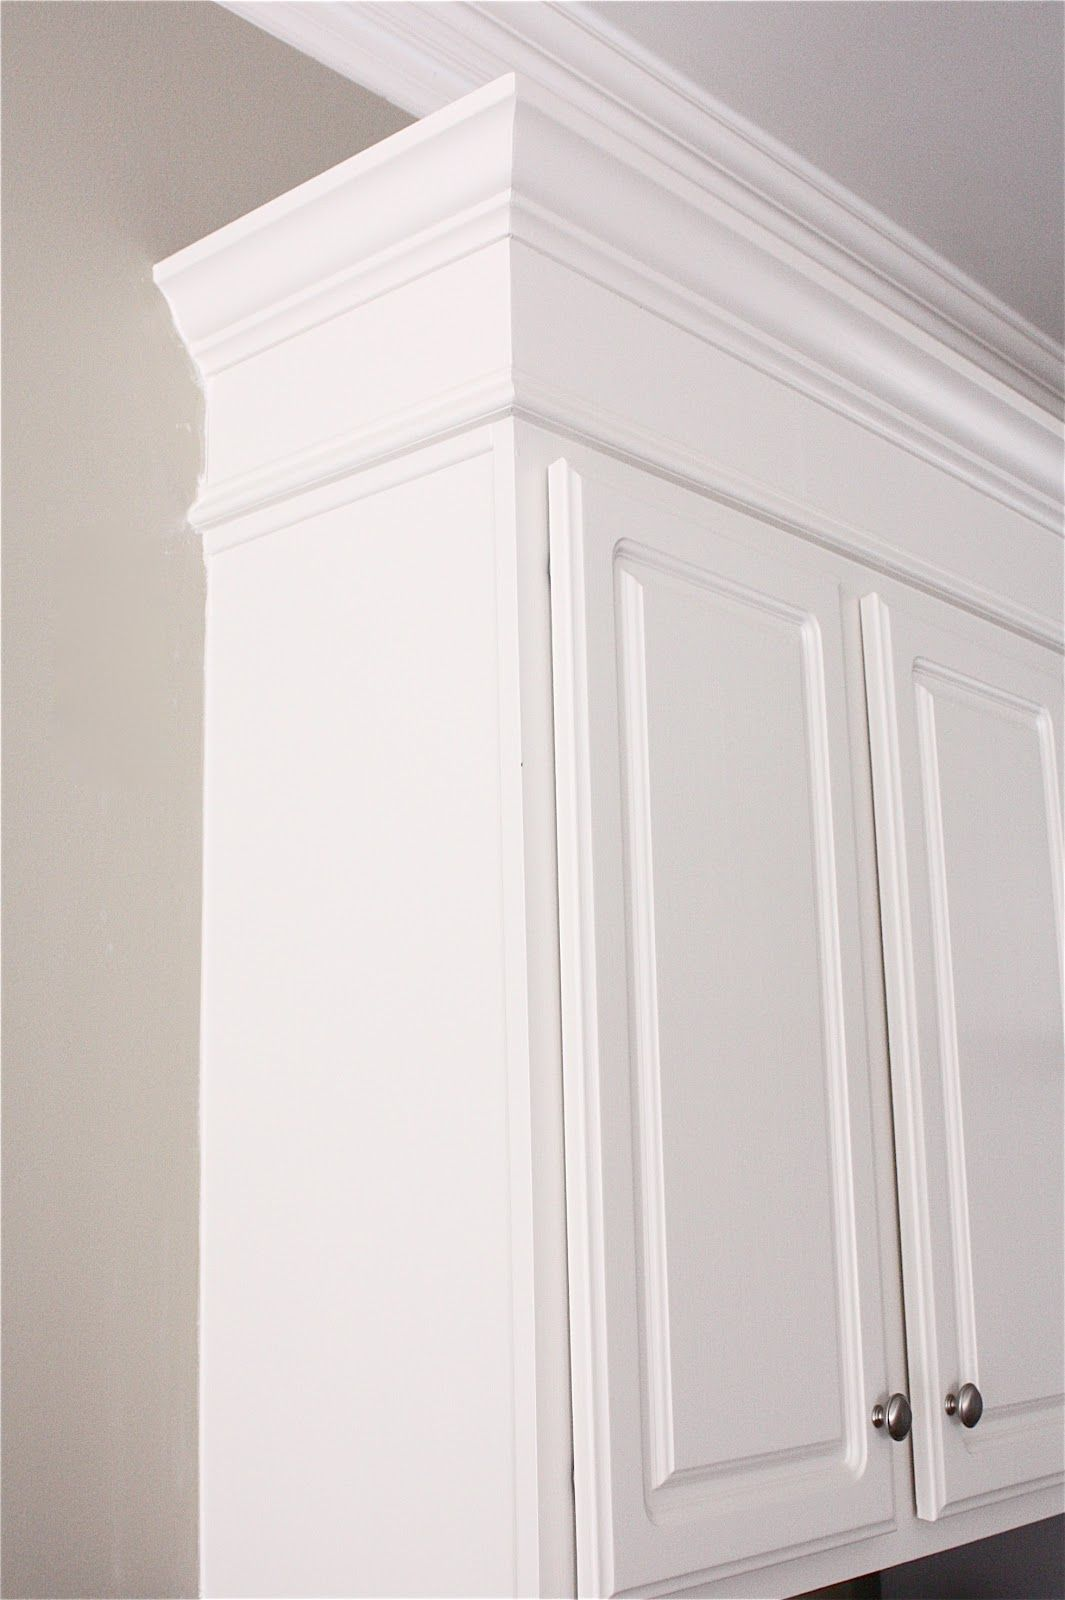 Great Idea To Reverse The Small Trim Piece Mirror Molding And Keep It From Looking Top Heavy Yellow Cape